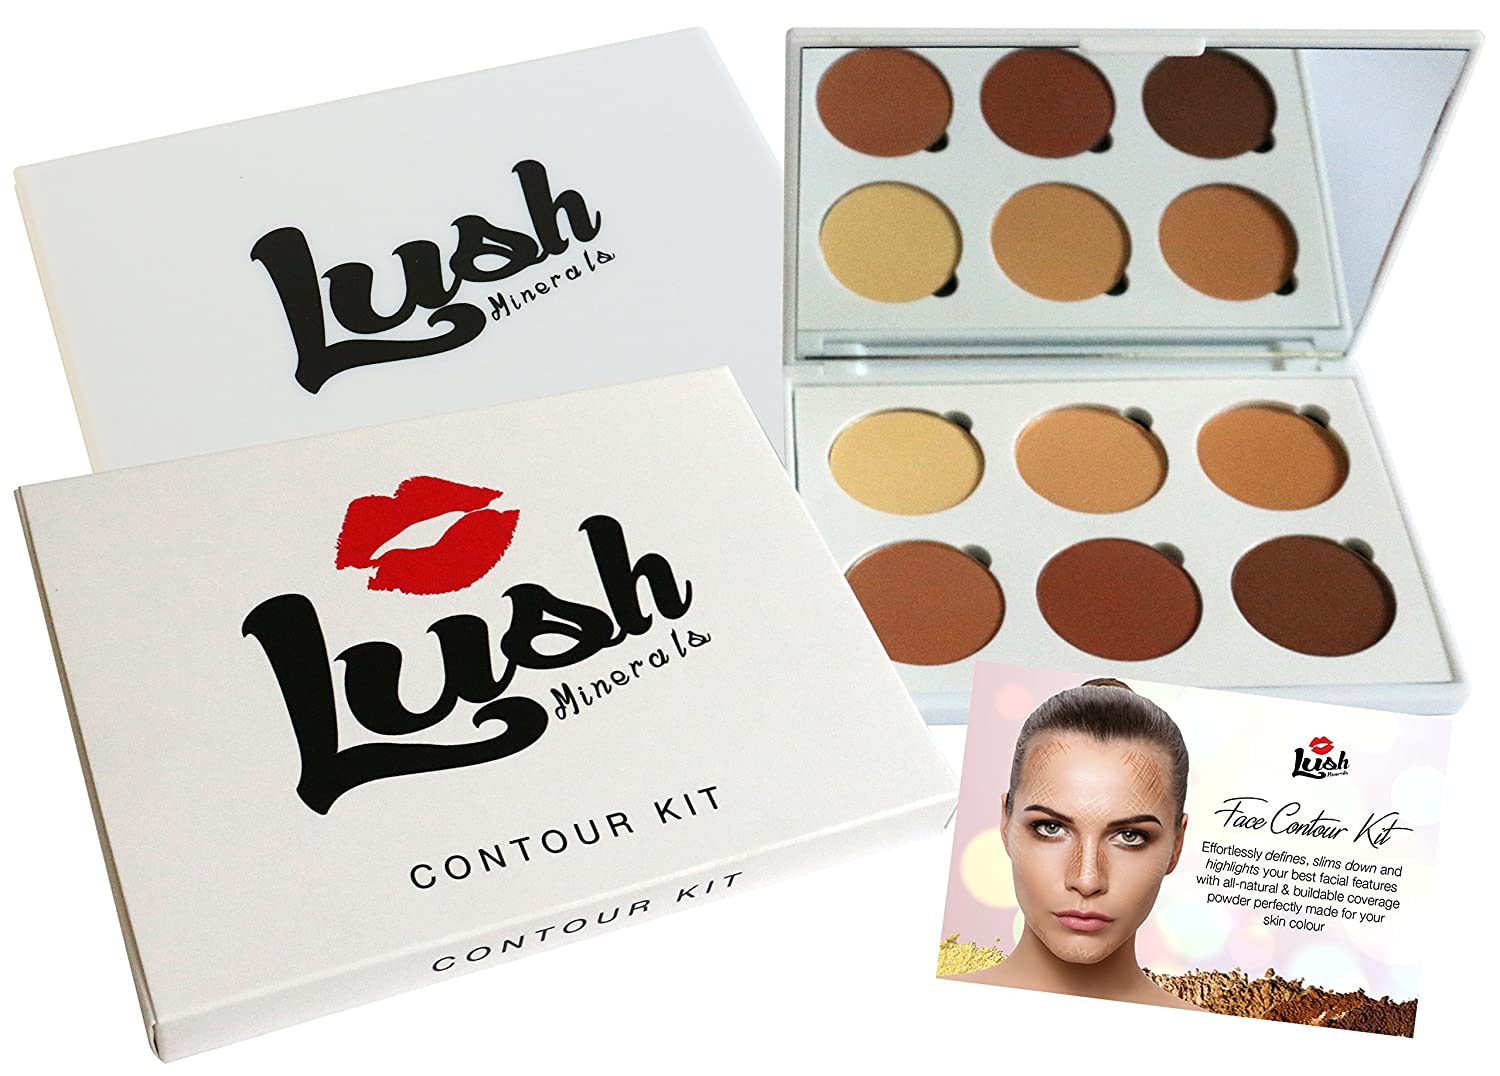 Contour Kit - Premium Makeup Kit & Contour Palette for Highlighting and Contouring All Skin Tones - Includes FREE Contouring Ebook